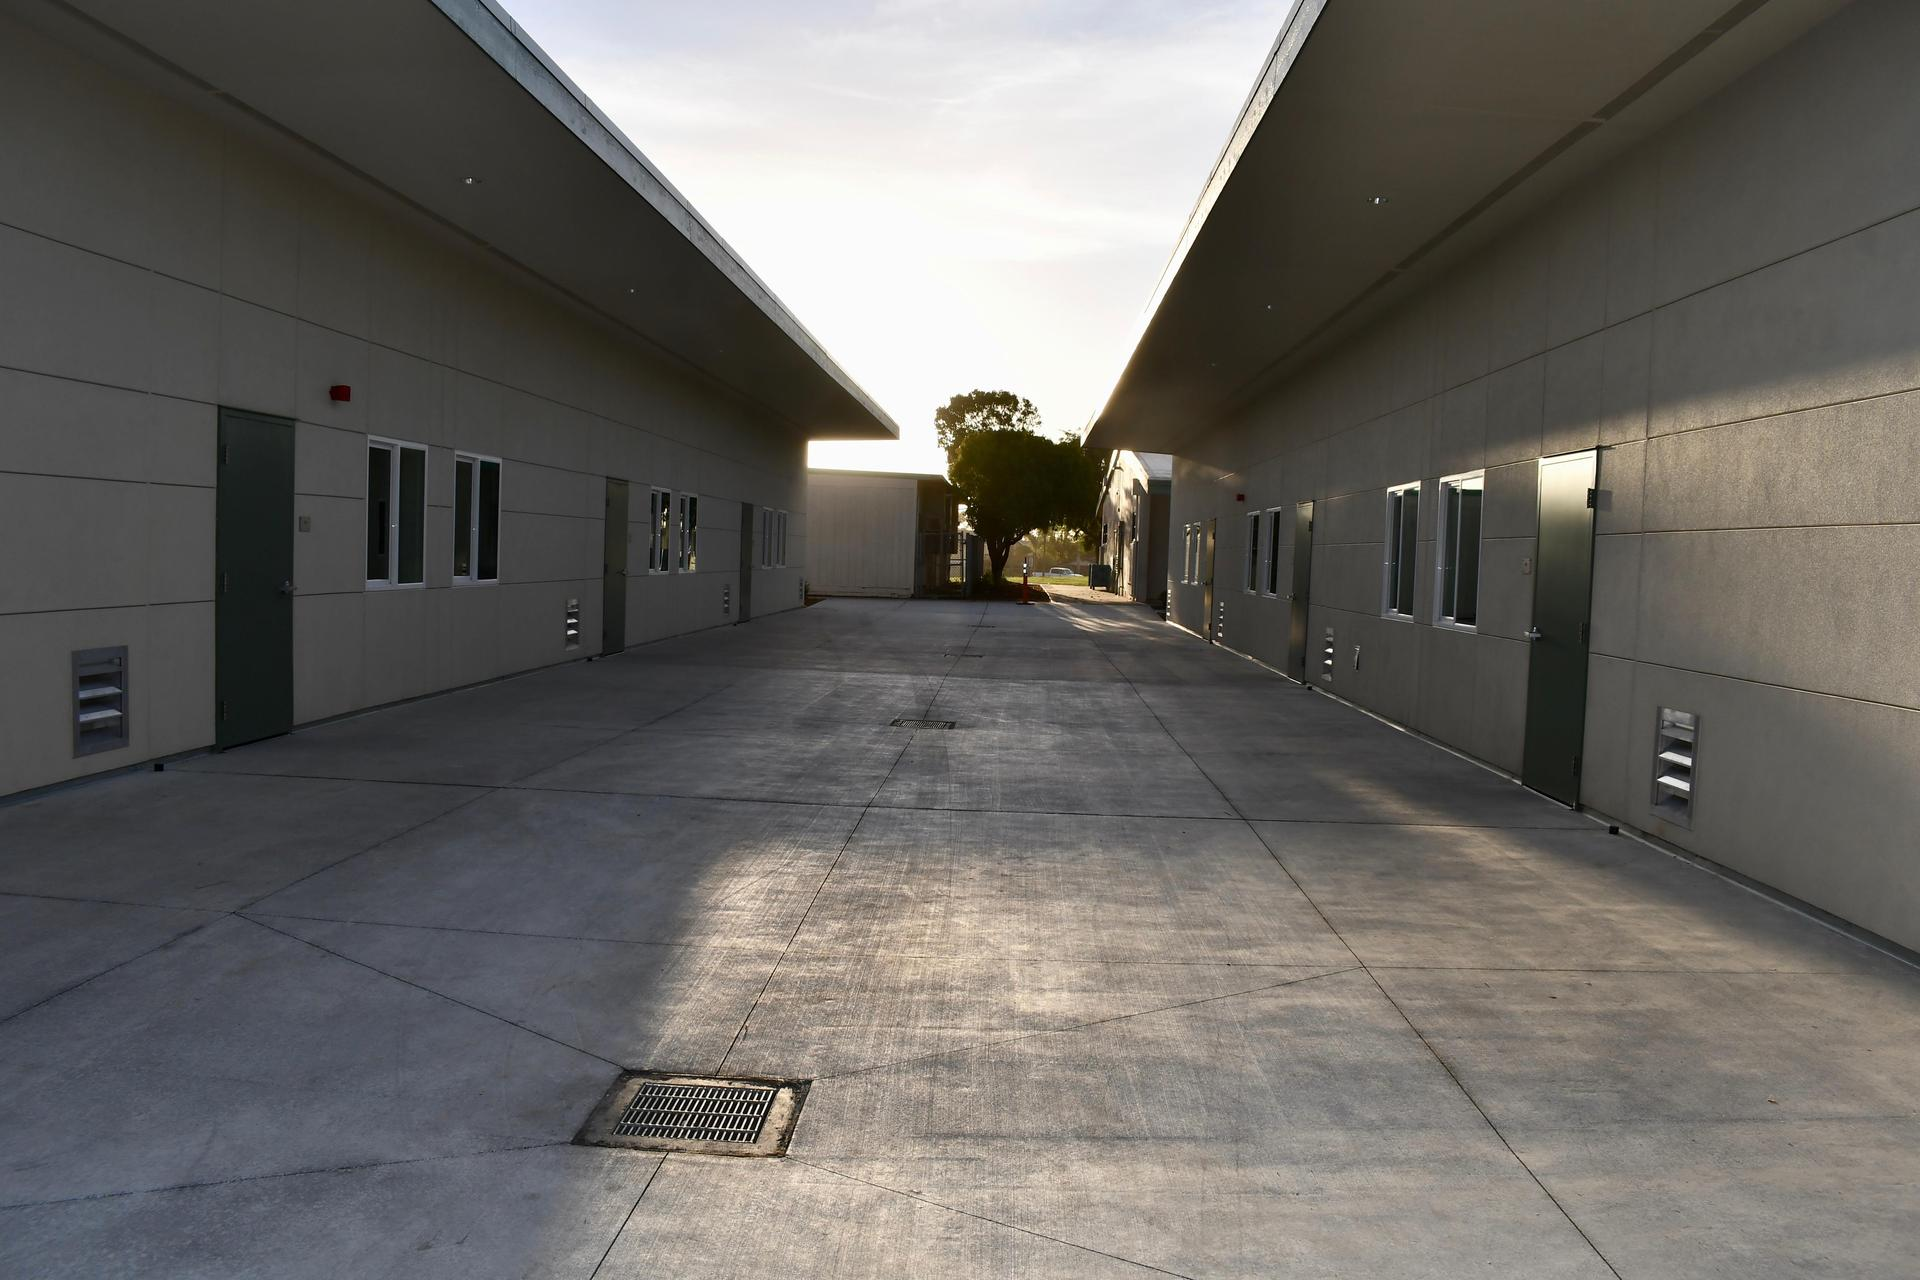 Row of new classrooms